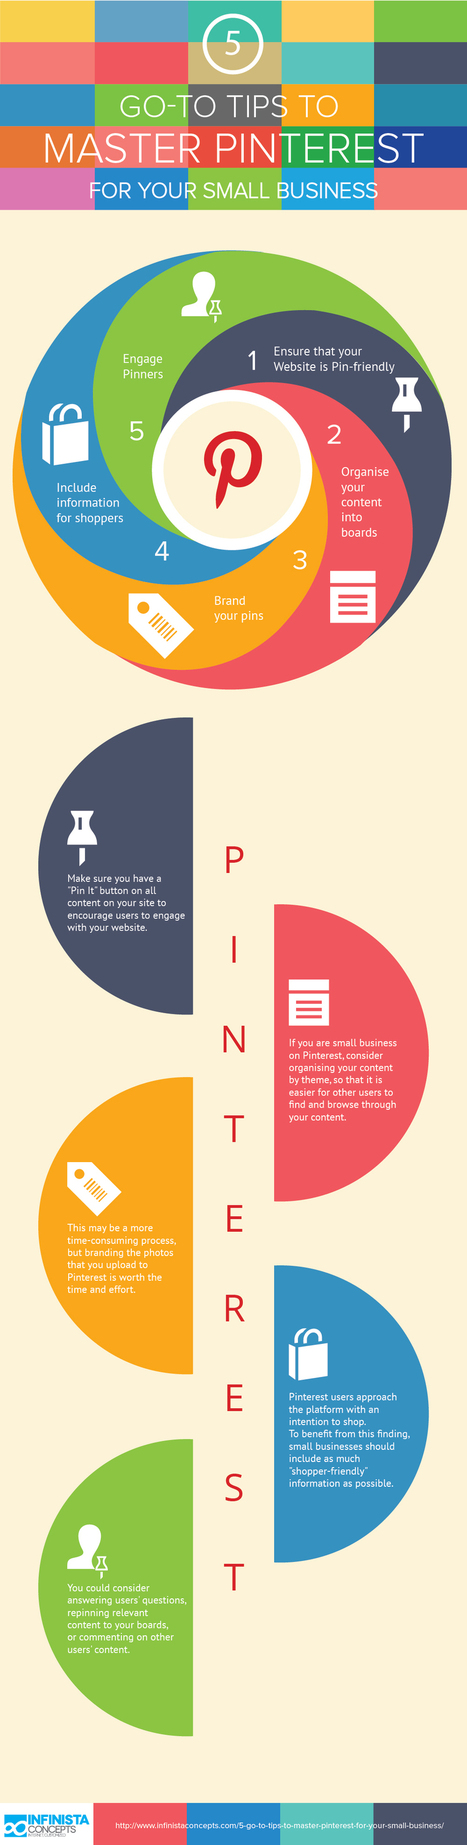 5 consejos para el Pinterest de tu pyme #infografia #infographic #socialmedia | Seo, Social Media Marketing | Scoop.it